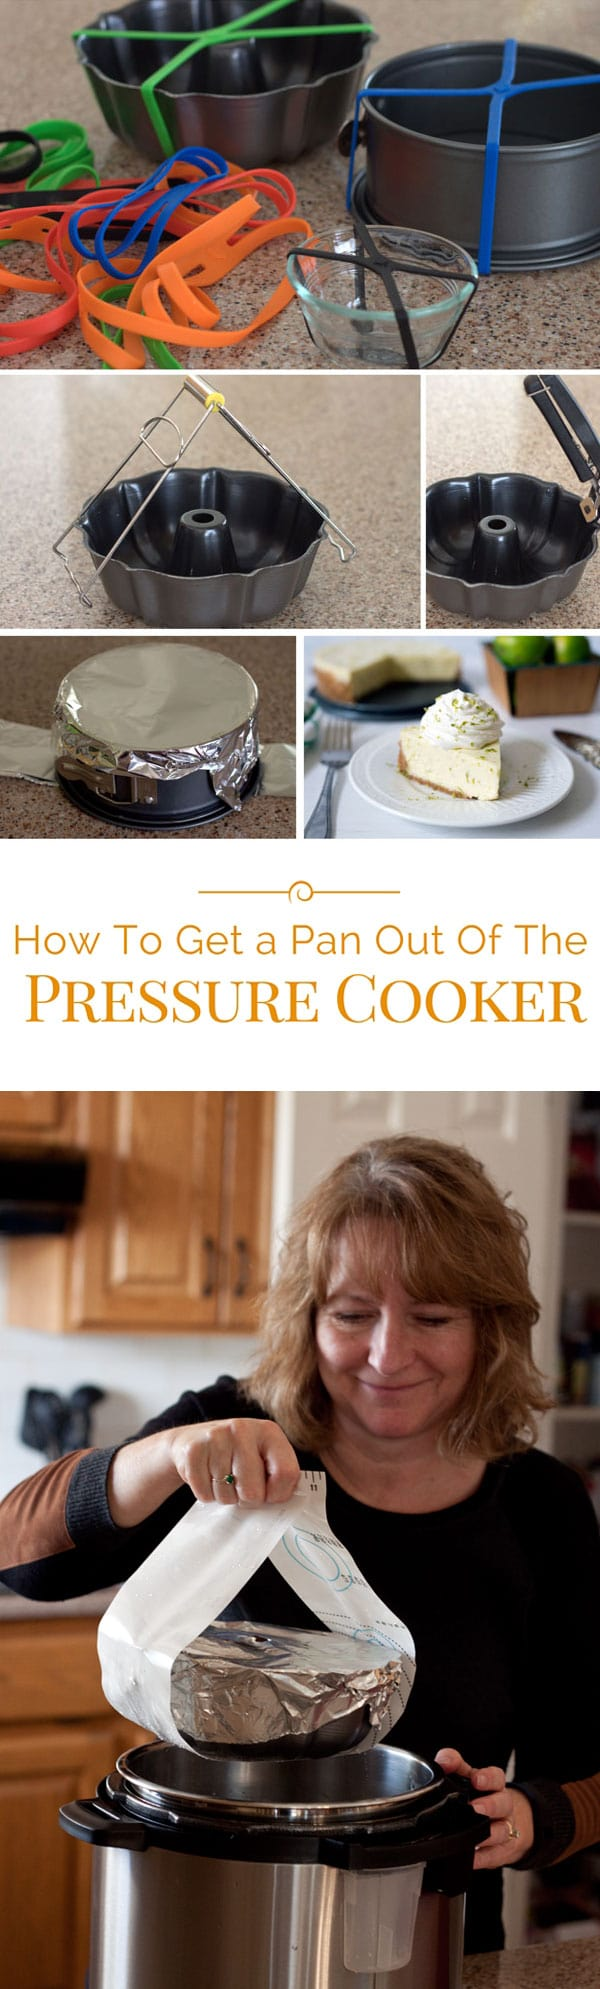 How To Get A Pan Out Of The Pressure Cooker